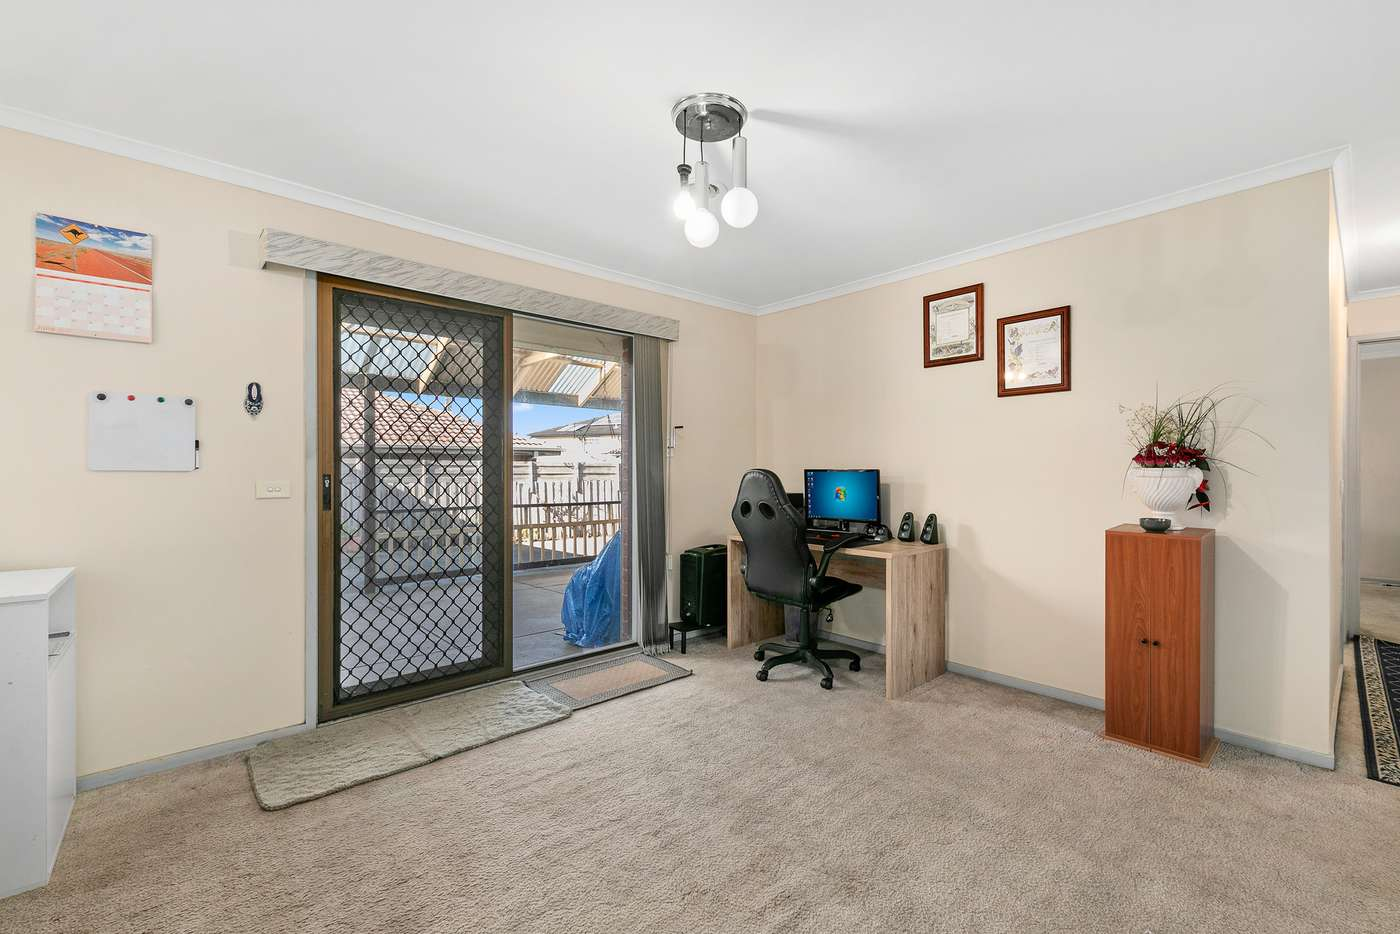 Sixth view of Homely house listing, 67 Nettle Drive, Hallam VIC 3803